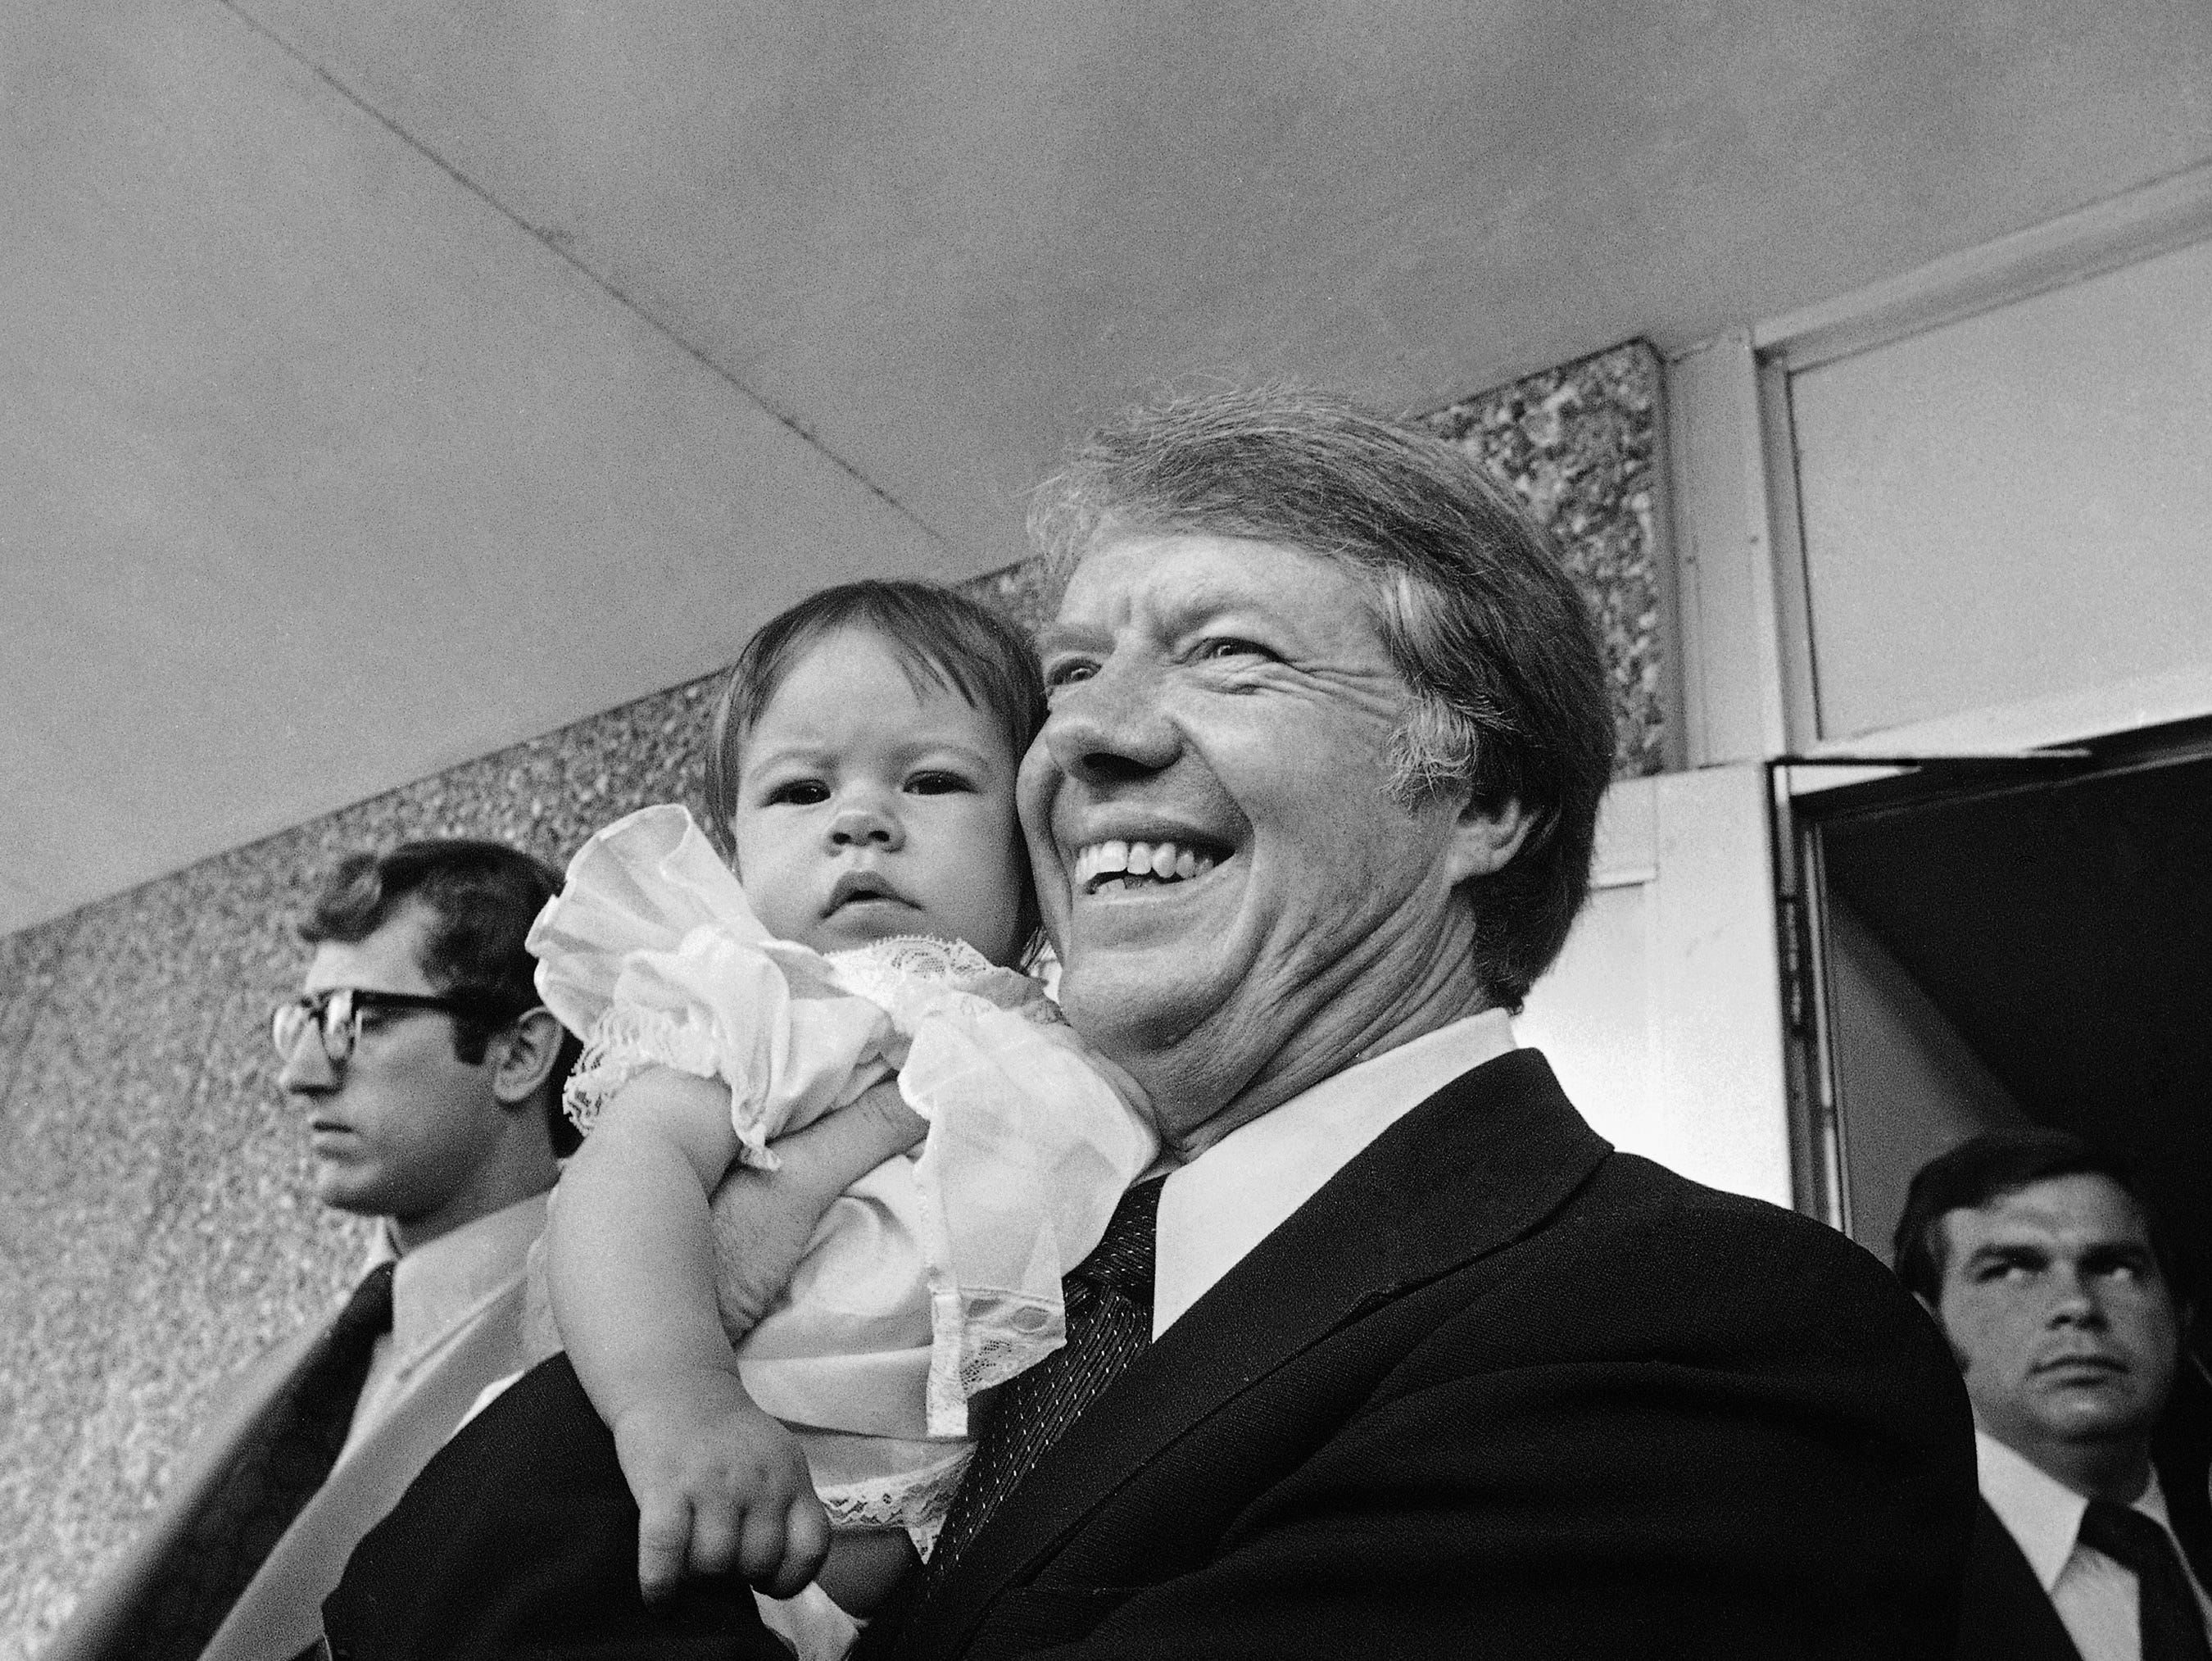 Democratic presidential candidate Jimmy Carter, right, smiles as he poses with Rachael Irene David, five months old, during a visit to Florida Memorial College in Miami, Fla., March 8, 1976.